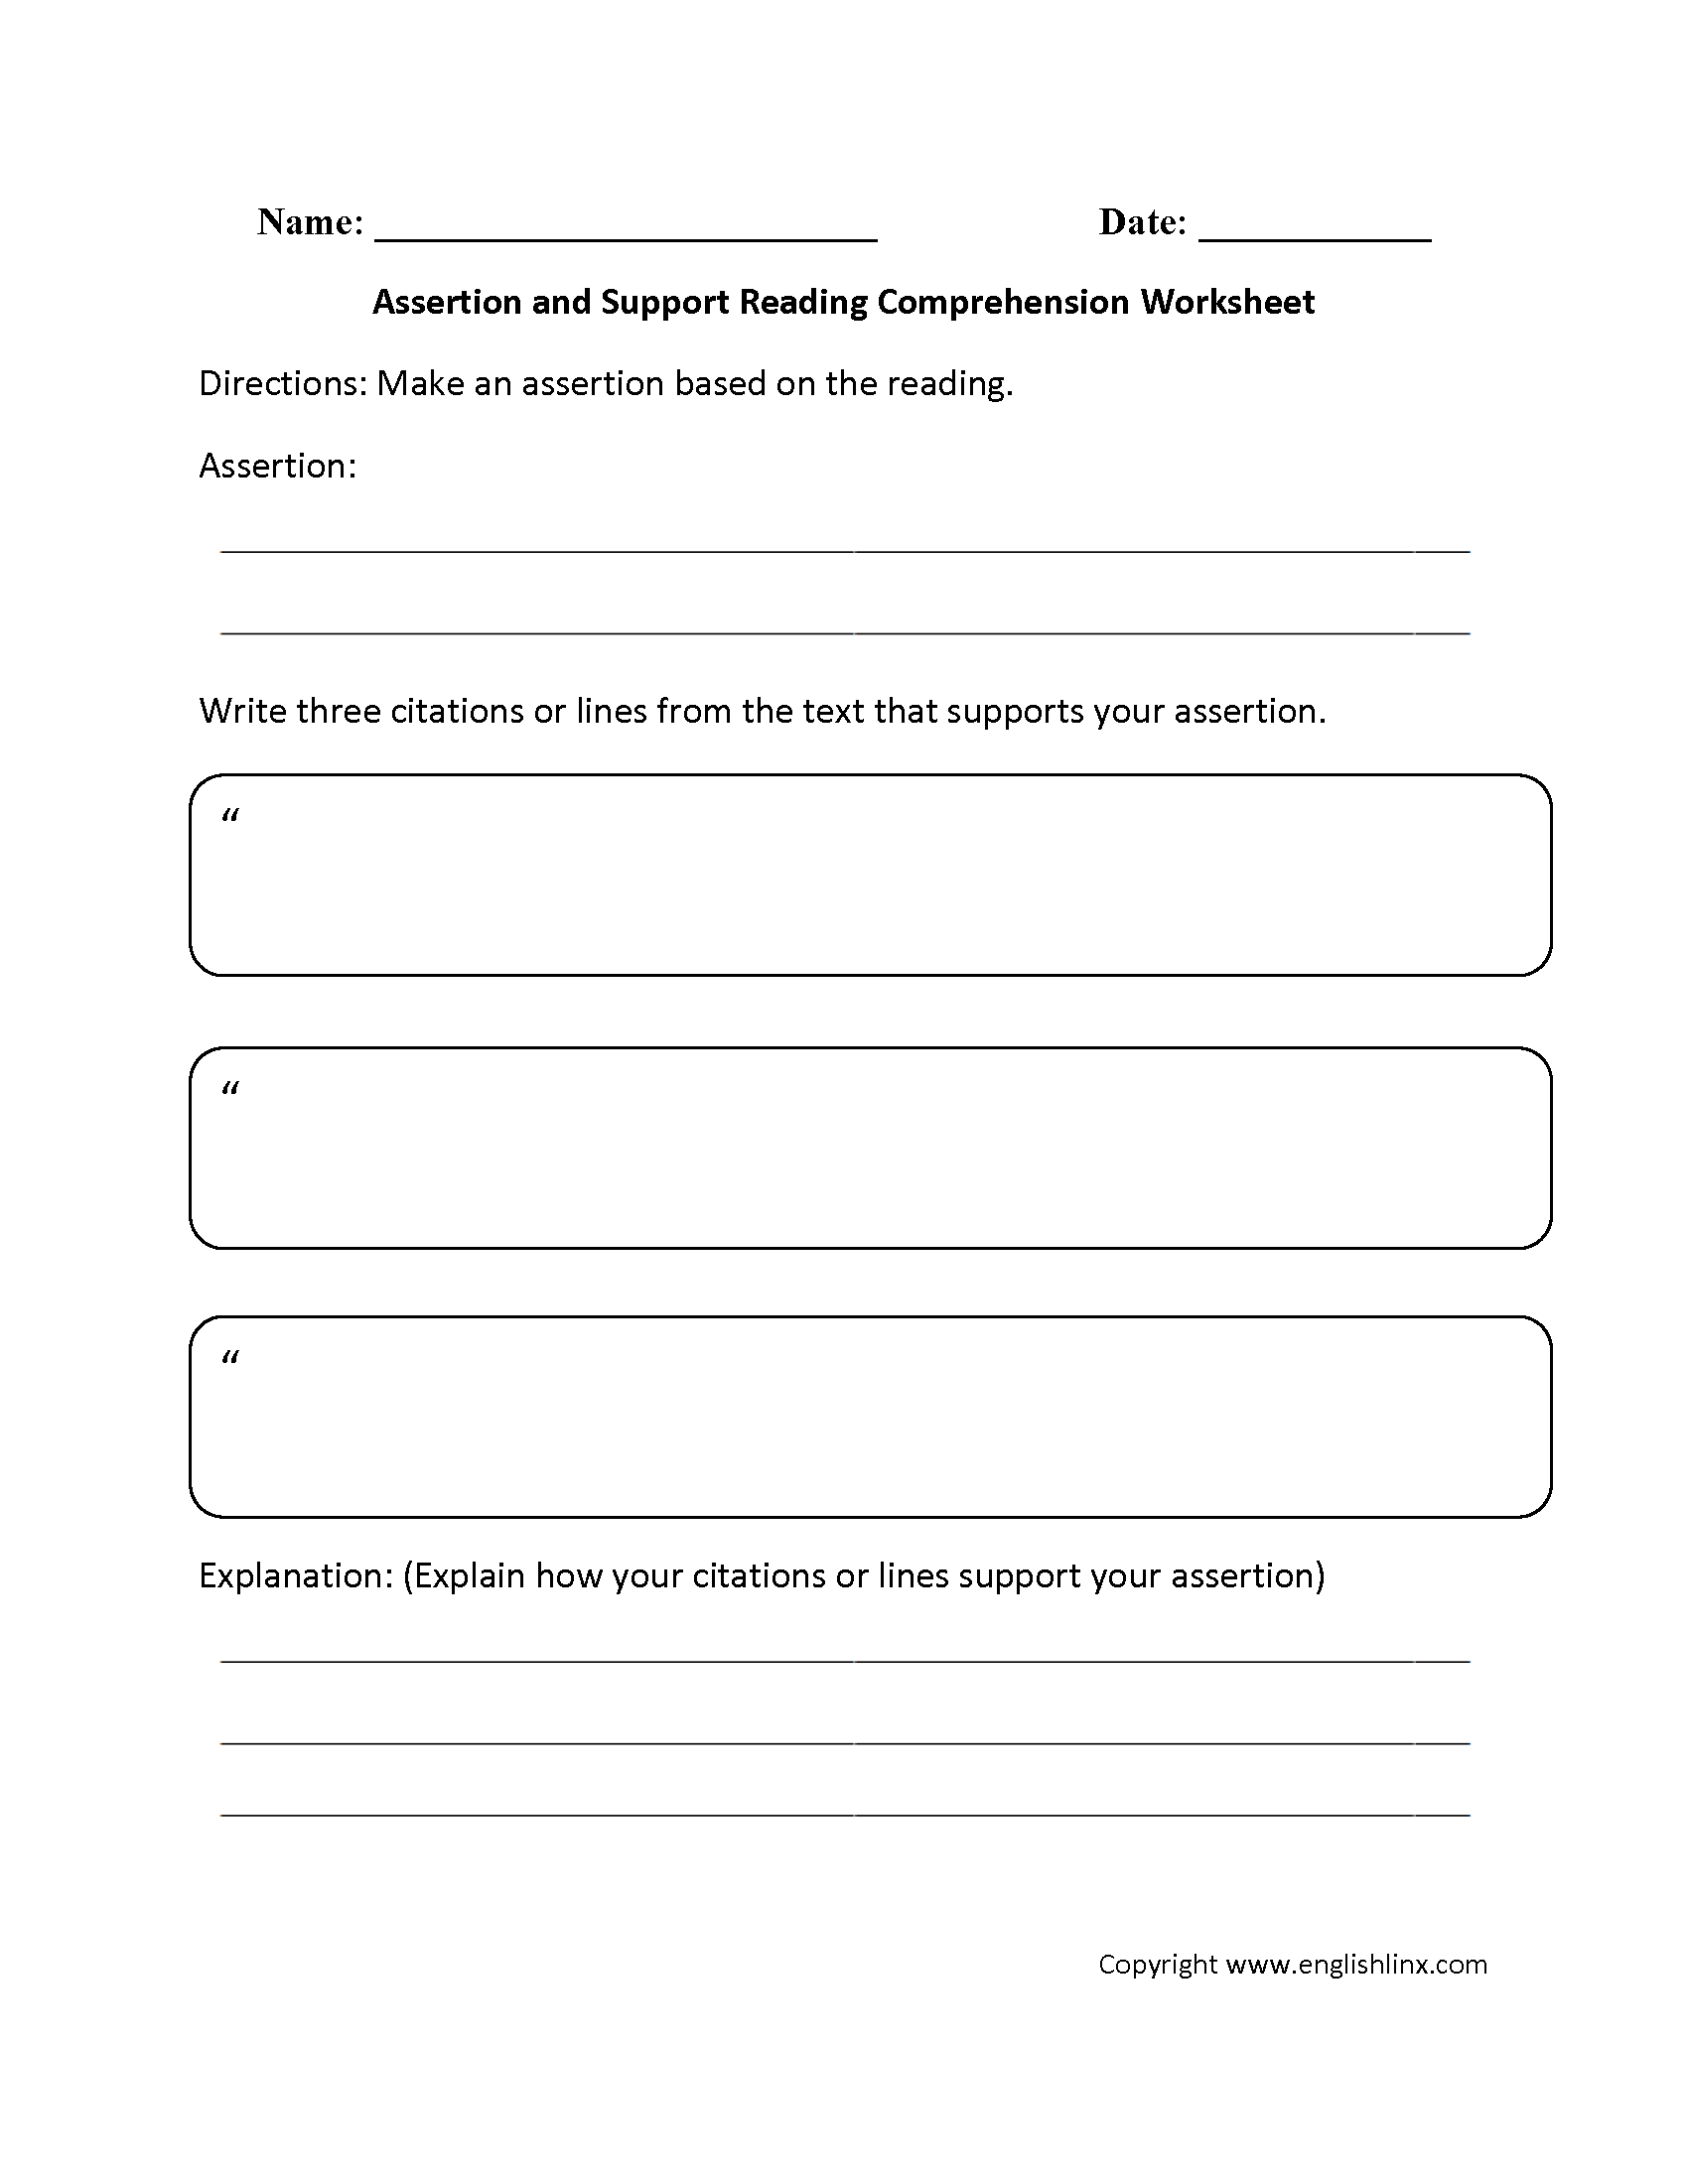 worksheet Reading Comprehension Worksheets Middle School englishlinx com reading comprehension worksheets worksheets